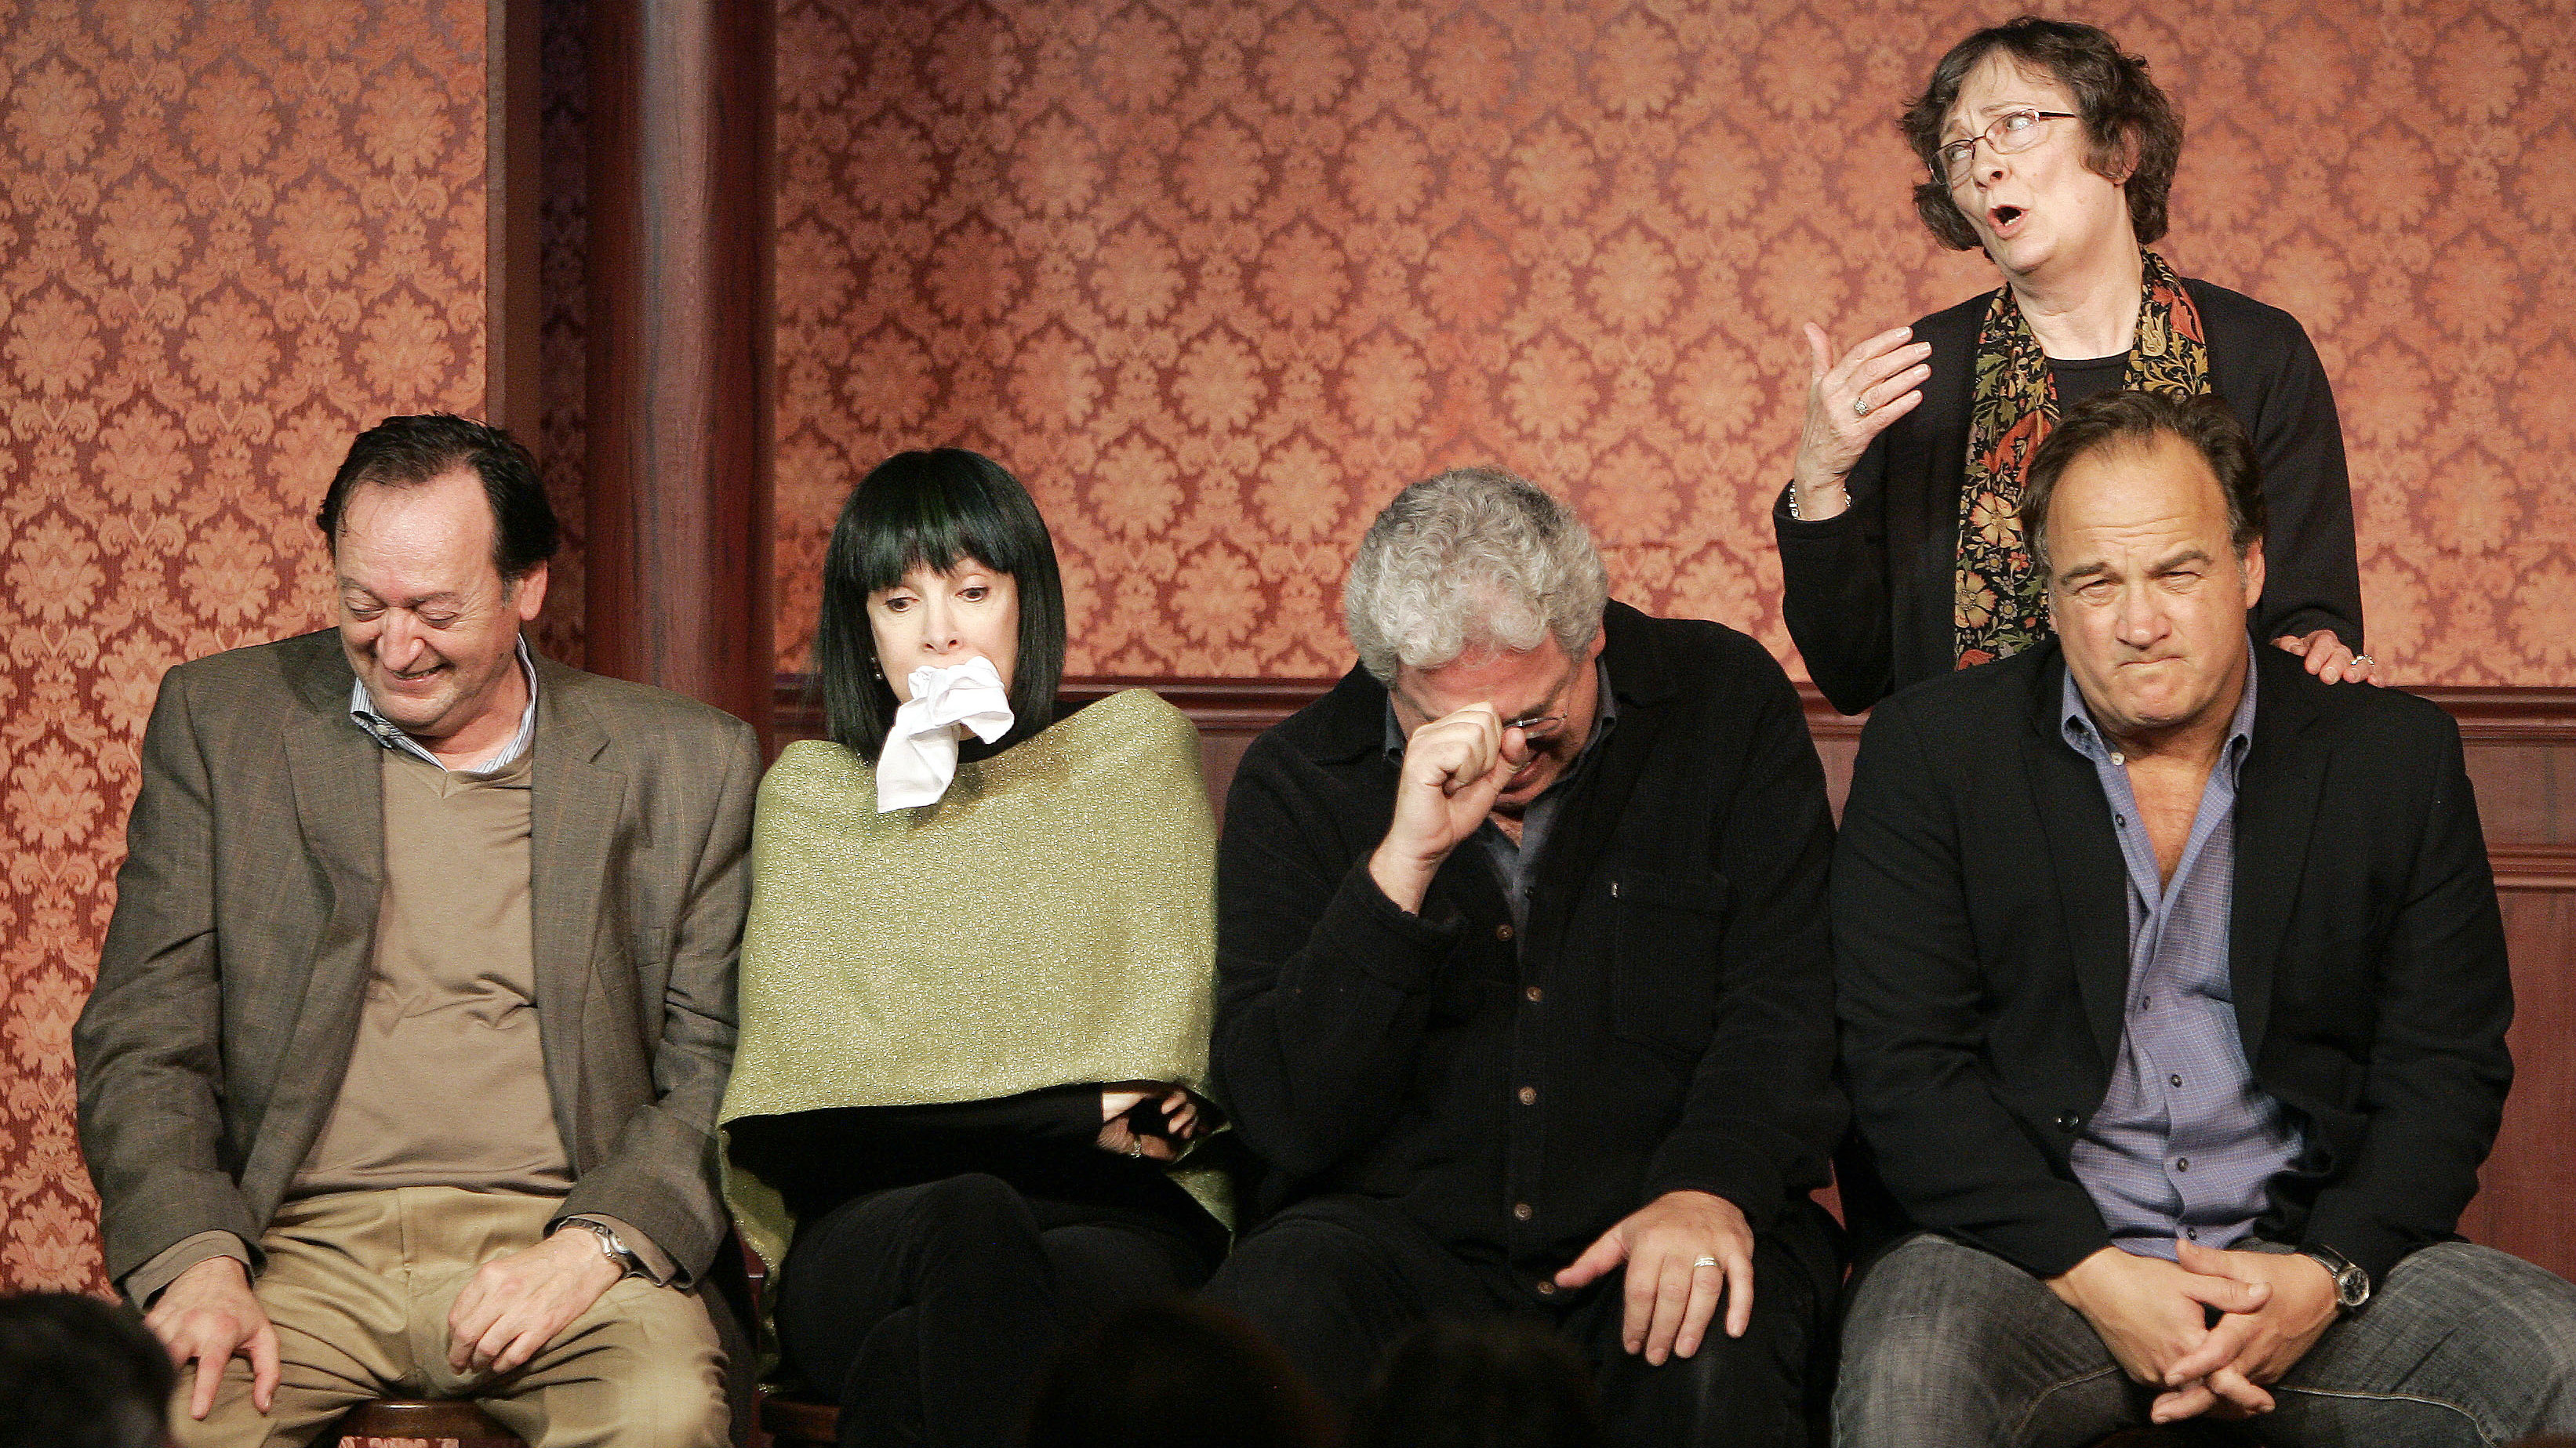 Jo Flaherty (L), Eugenie Ross-Leming (2nd L), Harold Ramis (2nd R), Jim Belushi (R) and Judy Morgan perform a skit as part of celebrations marking the 50th anniversary of improv theater, The Second City, in Chicago December 12, 2009. REUTERS/Frank Polich (UNITED STATES - Tags: ENTERTAINMENT SOCIETY)